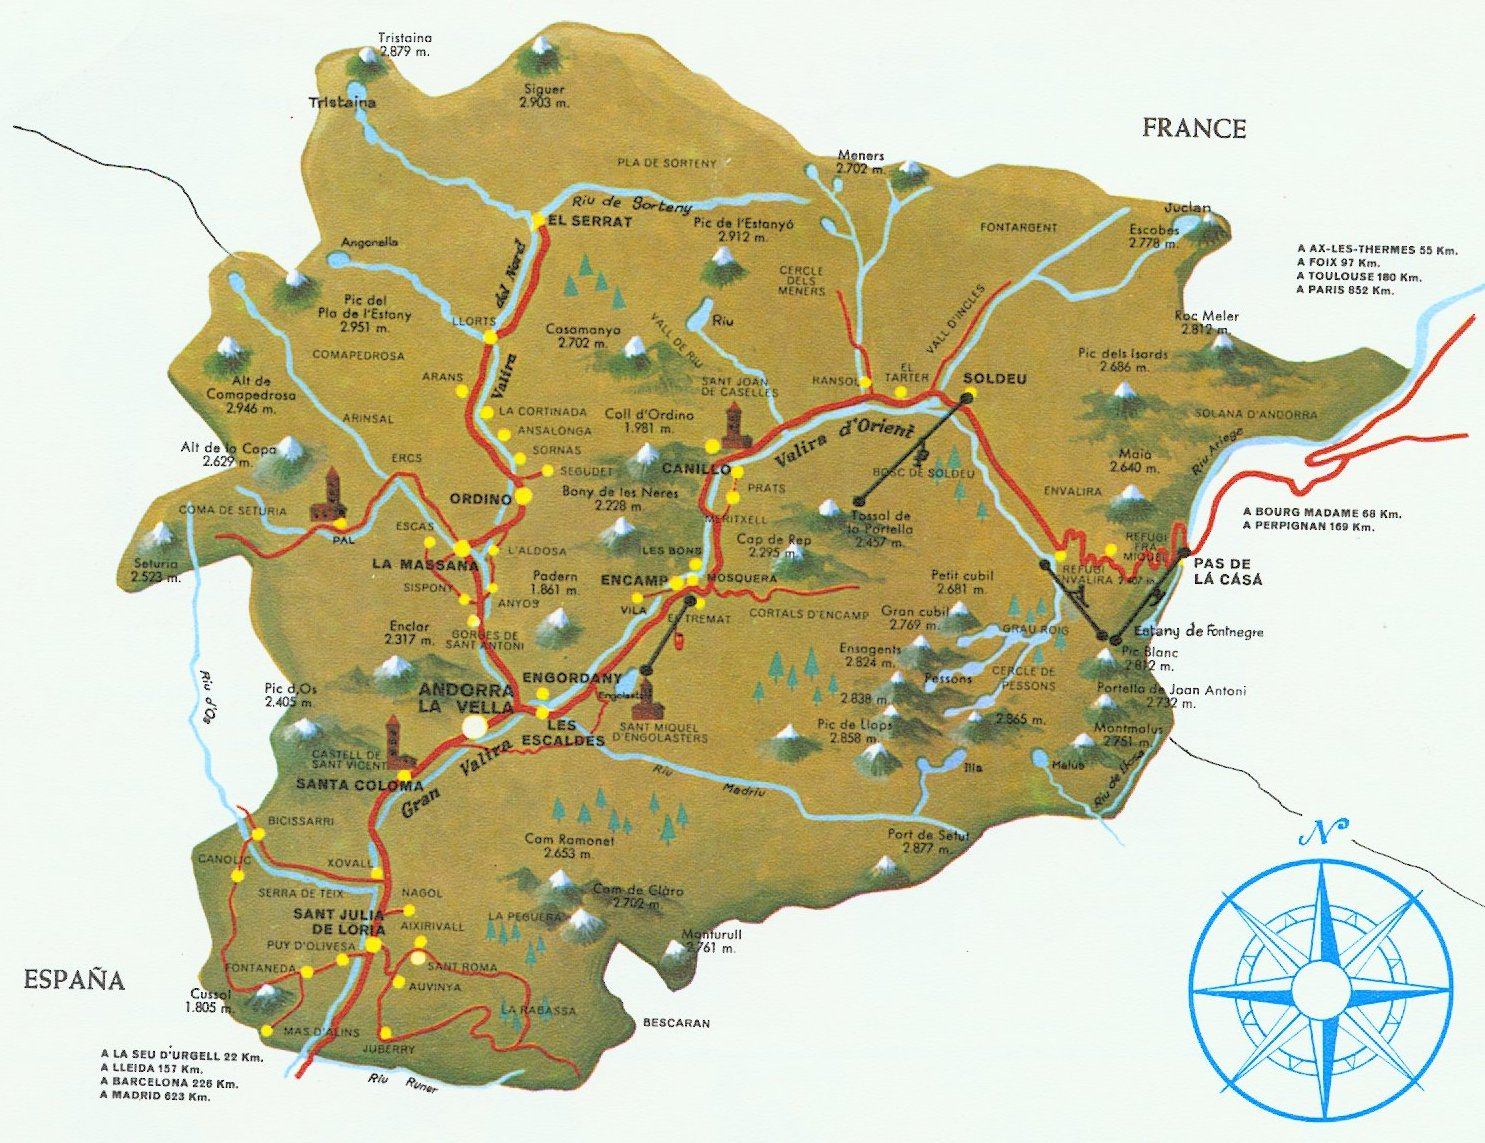 Map of Andorra in the Iberian Peninsula